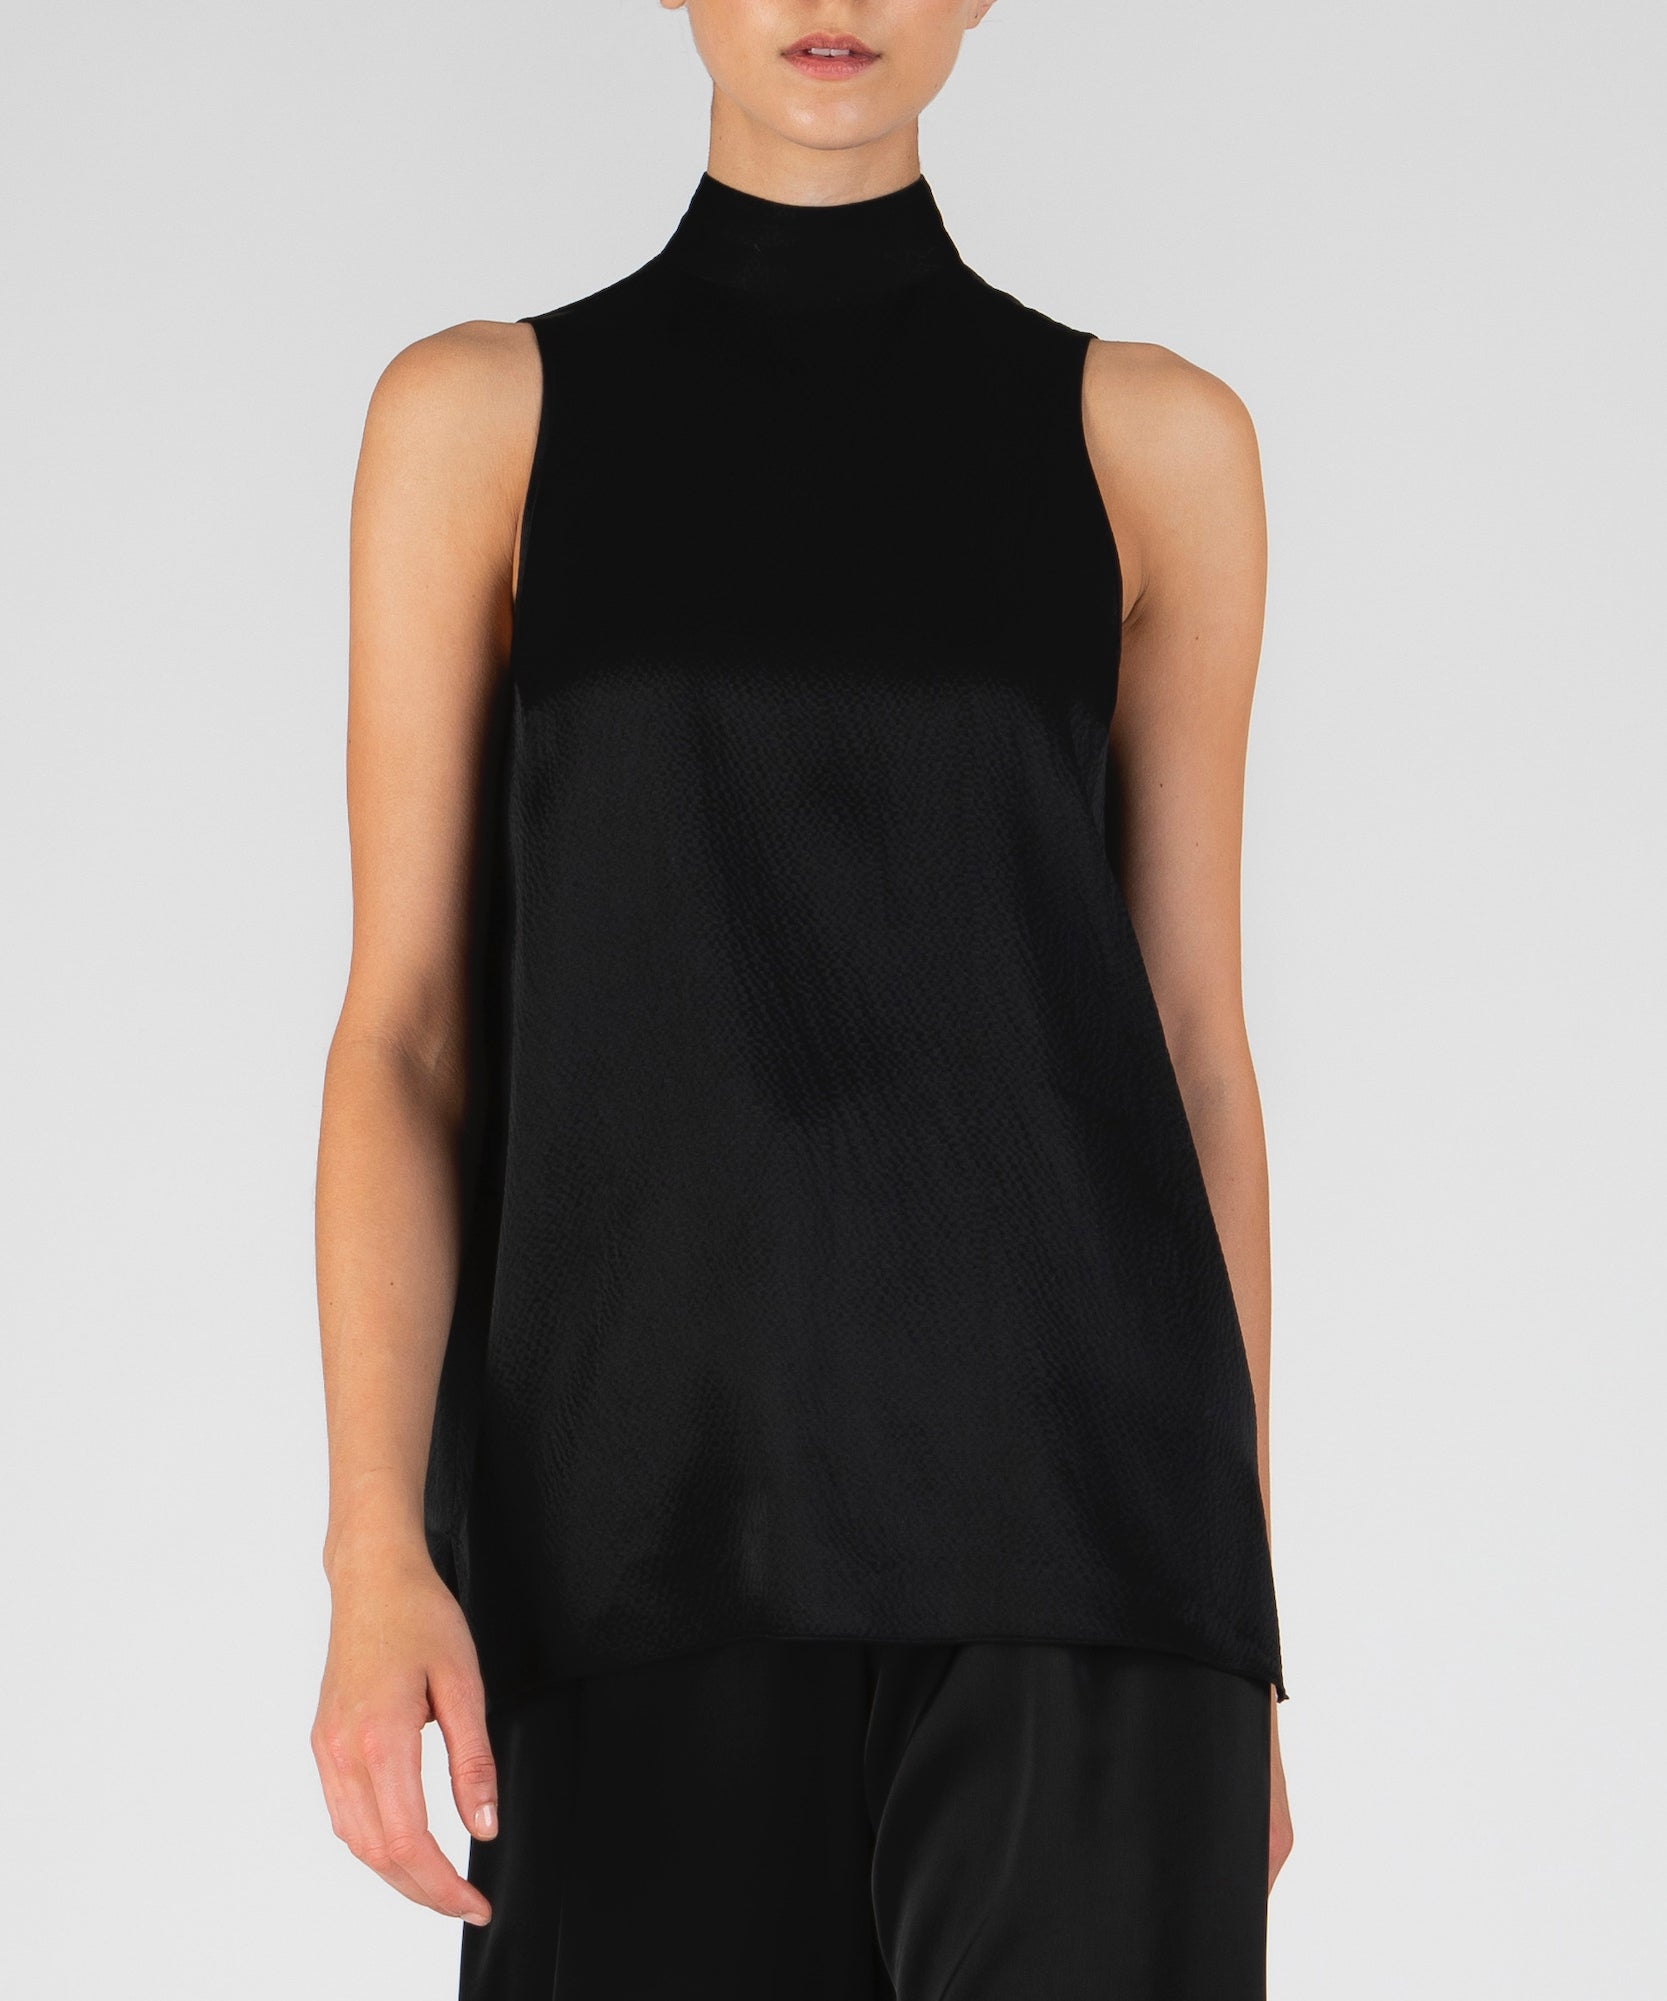 Black Hammered Silk Mock Neck Top - Women's Silk Top by ATM Anthony Thomas Melillo